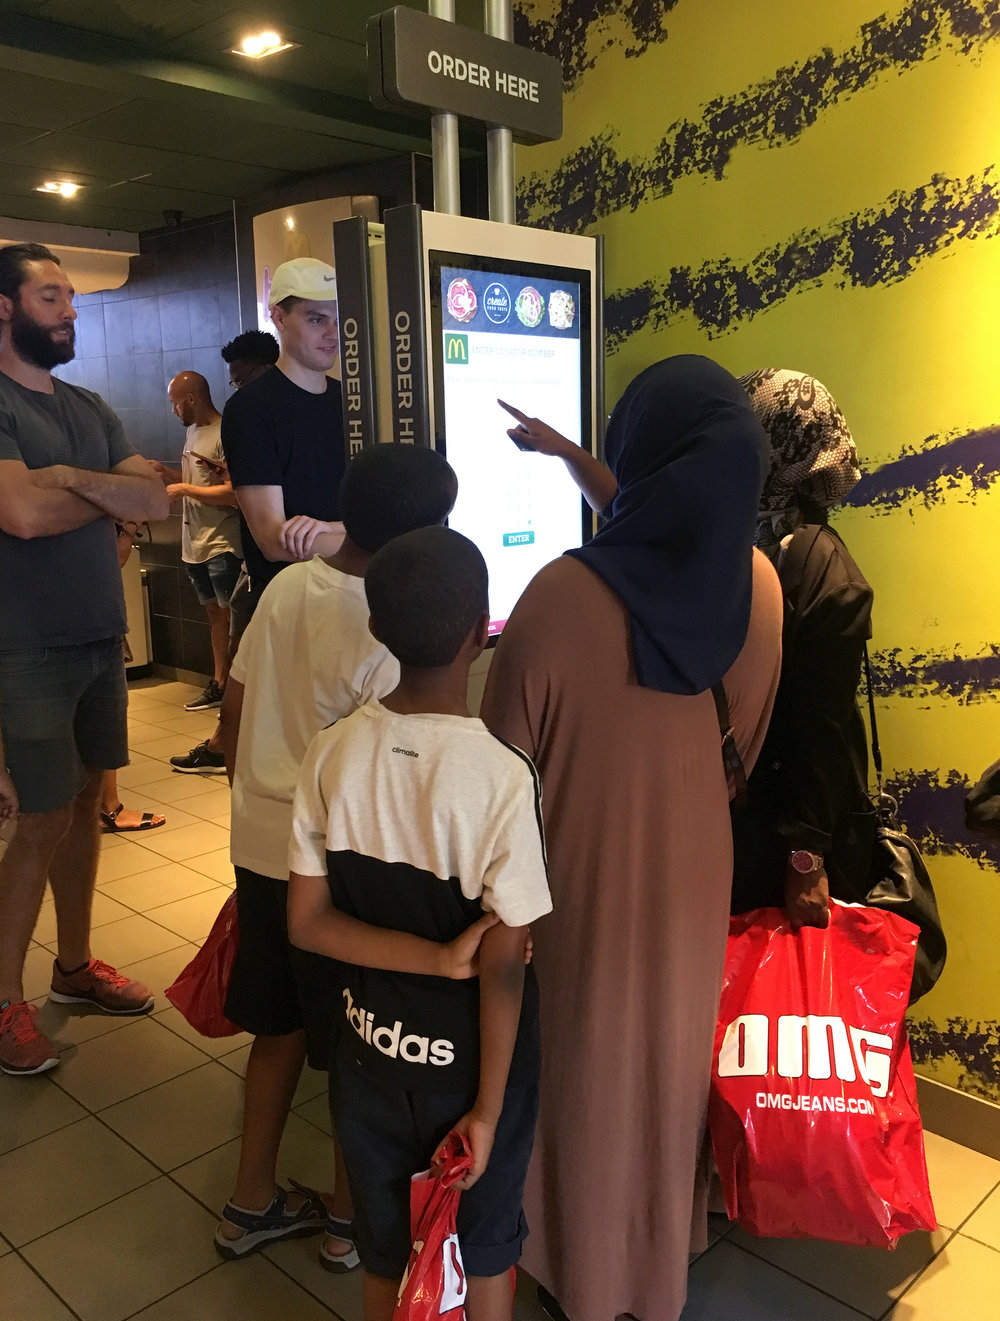 We conducted guerilla ethnographic research. On this day at the local McDonald's on Canal Street, I observed a family ordering as a group on the current Kiosk 5.X build.